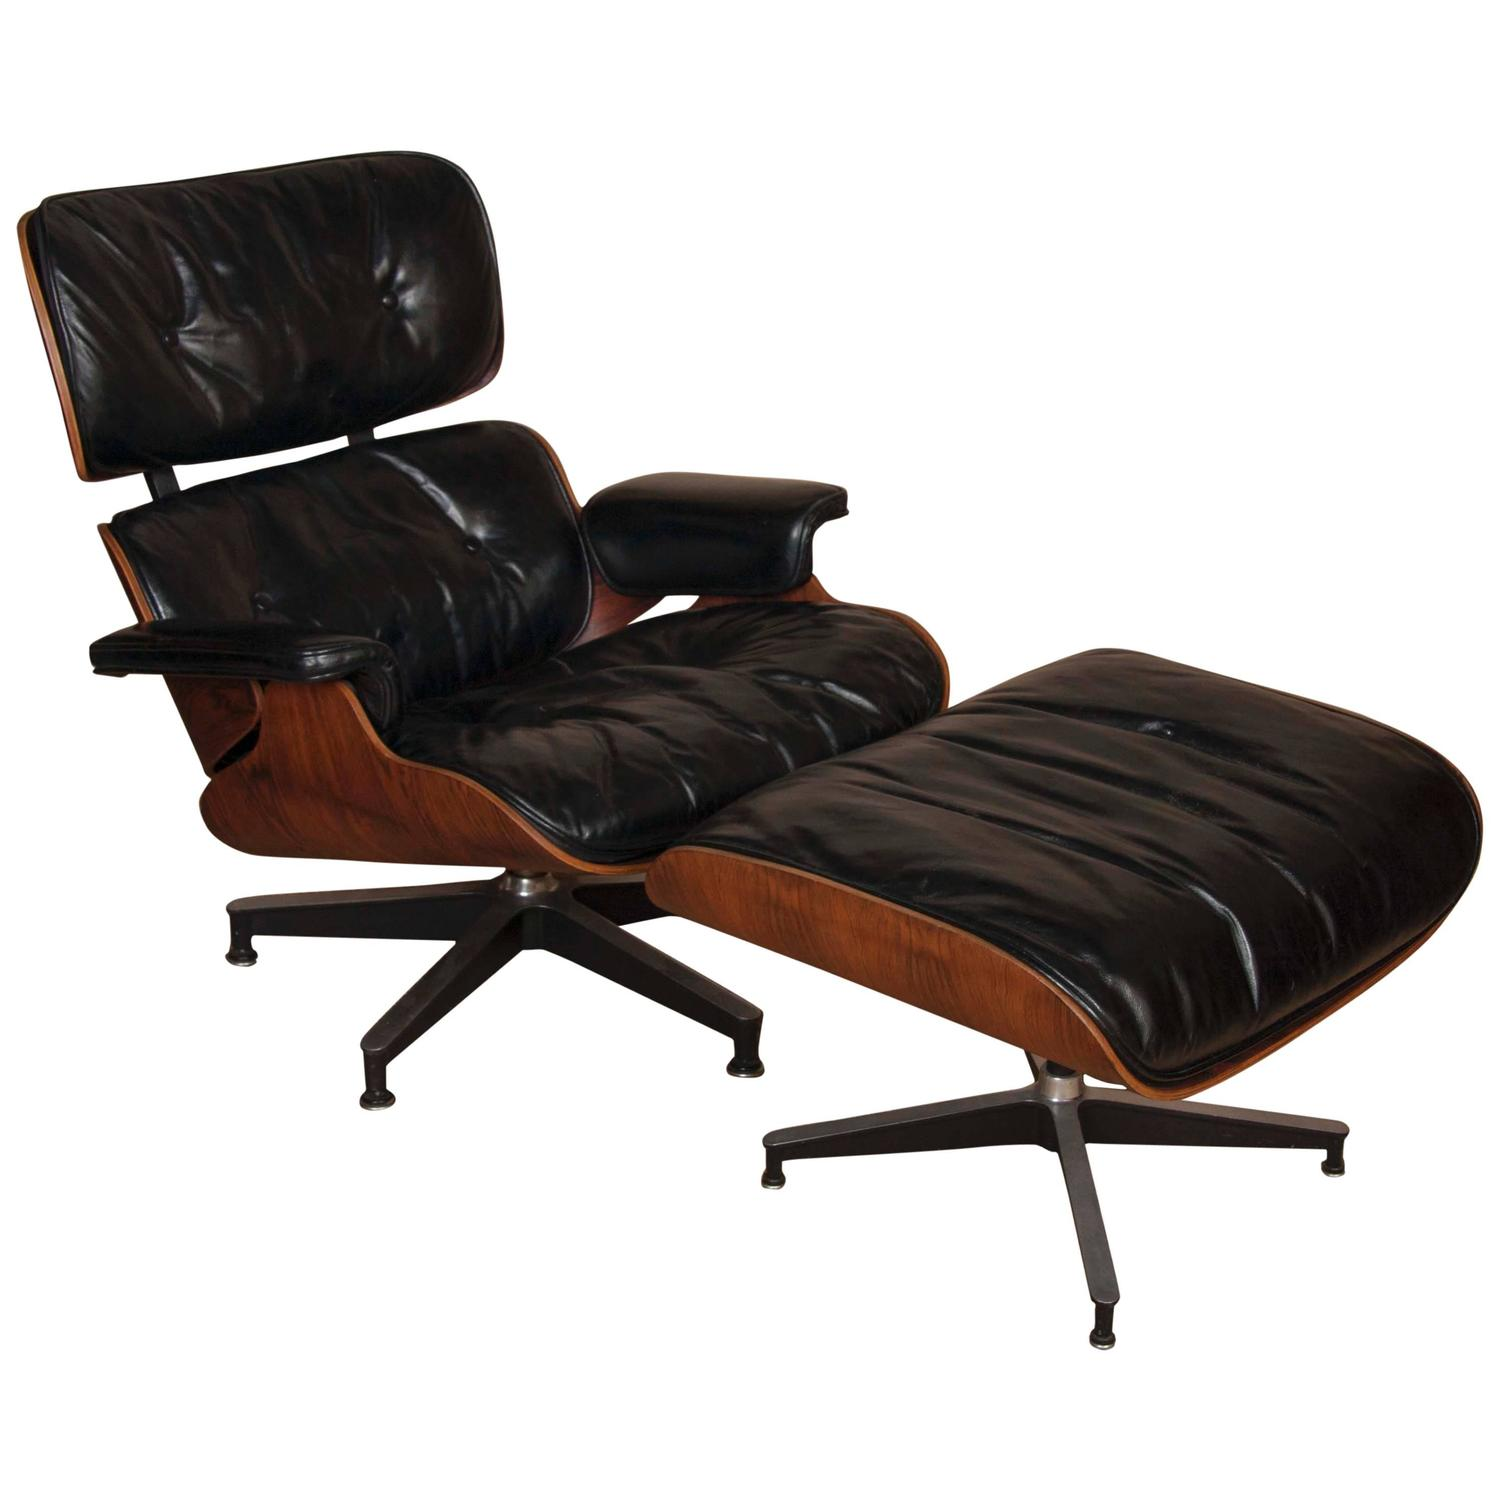 charles and ray eames lounge chair and ottoman at 1stdibs. Black Bedroom Furniture Sets. Home Design Ideas